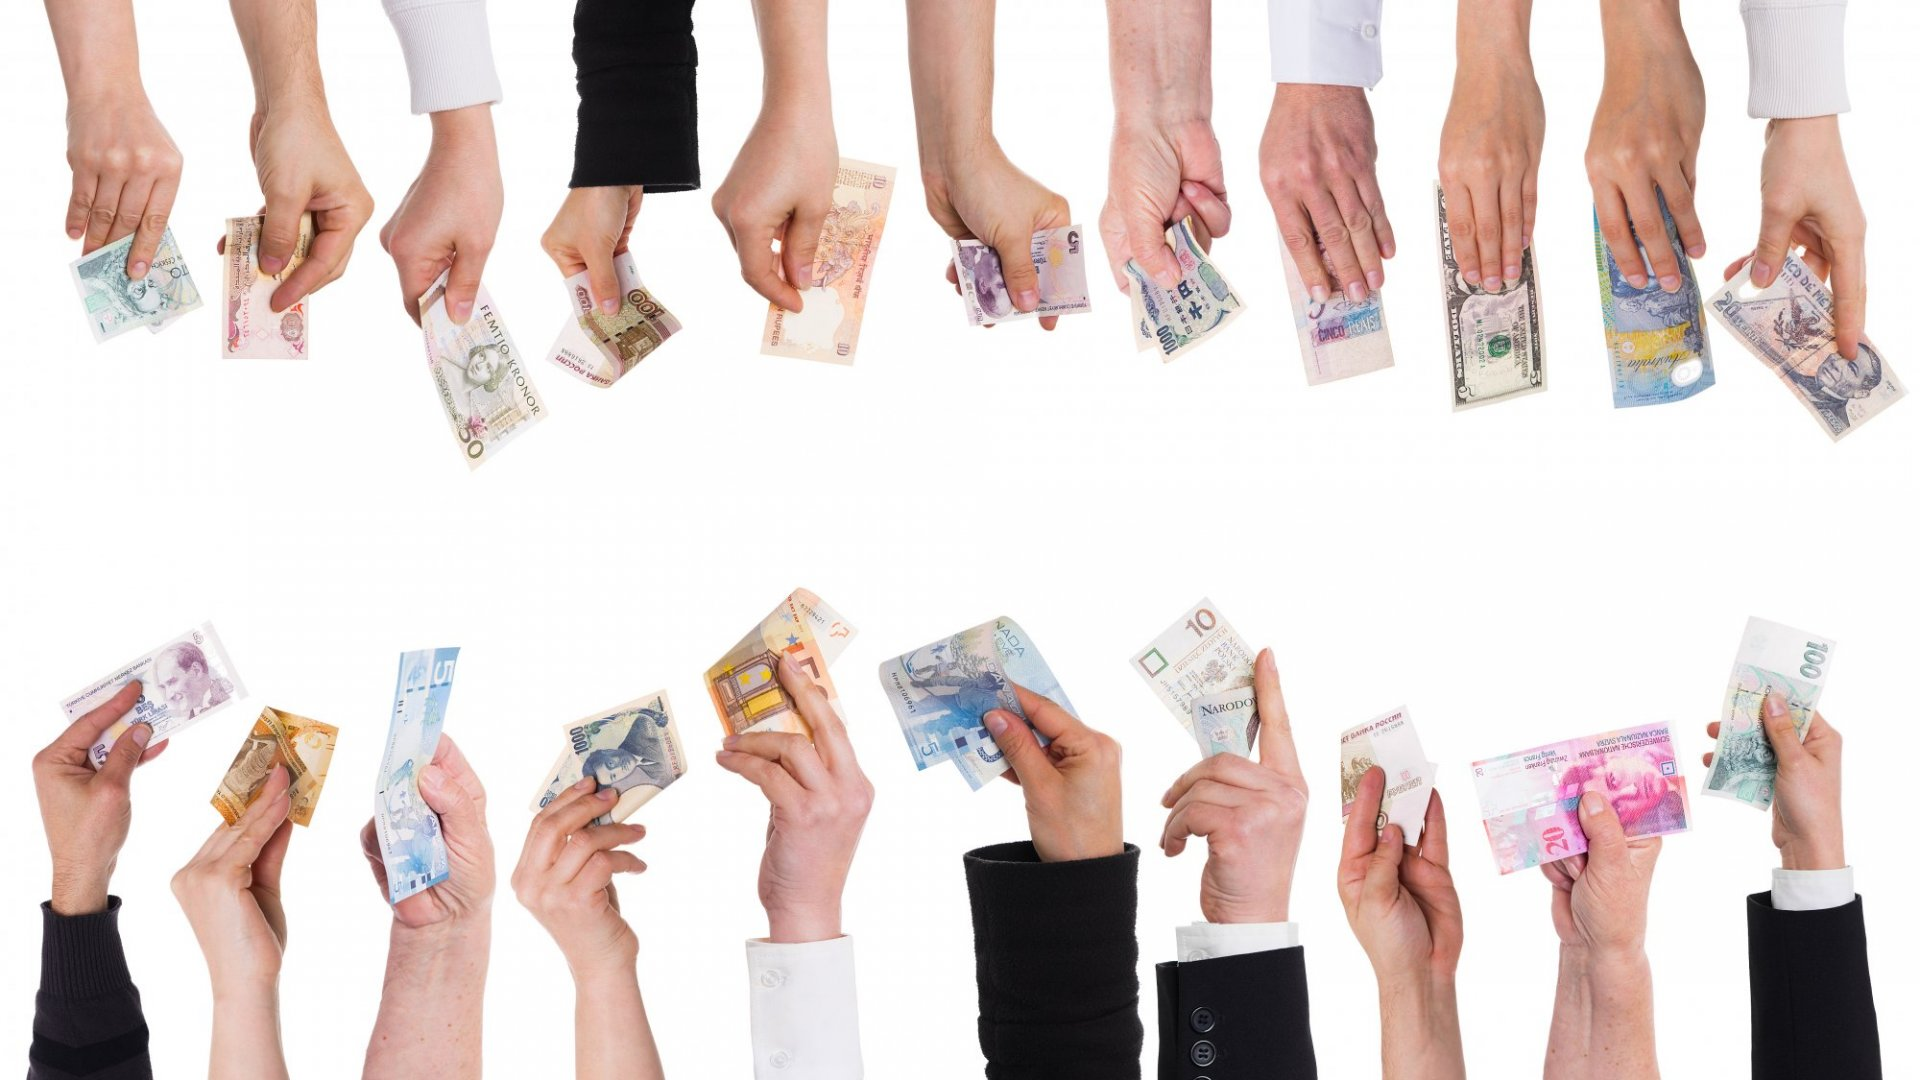 Crowdfunding: 5 Smart Strategies From Top Performers